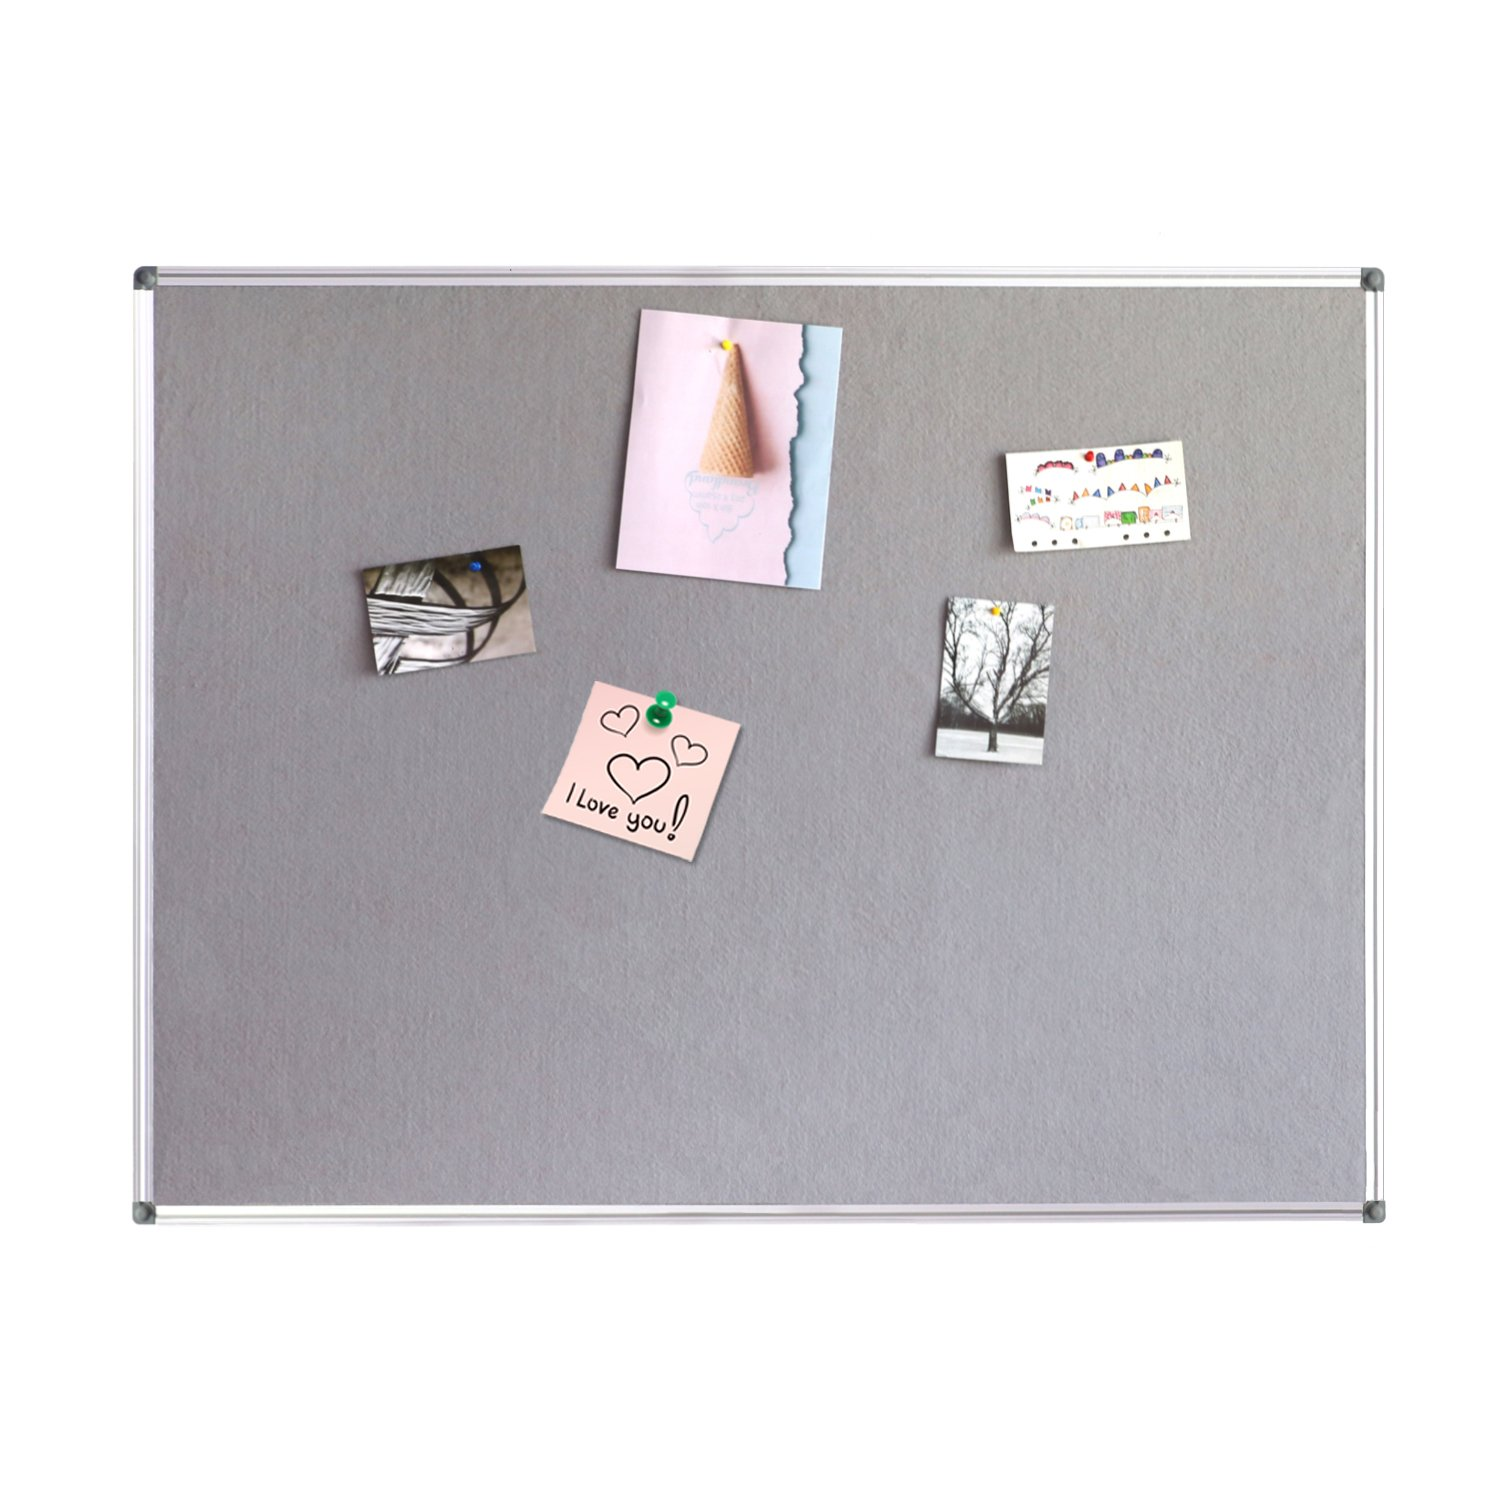 4 THOUGHT Fabric Bulletin Board 48 x 36 Inches Wall Mounted with Silver Aluminium Frame Message Memo Pin Board for Display and Organize Office or Classroom, 4 x 3 Feet, 10 Push Pins Included, Gray by 4 THOUGHT